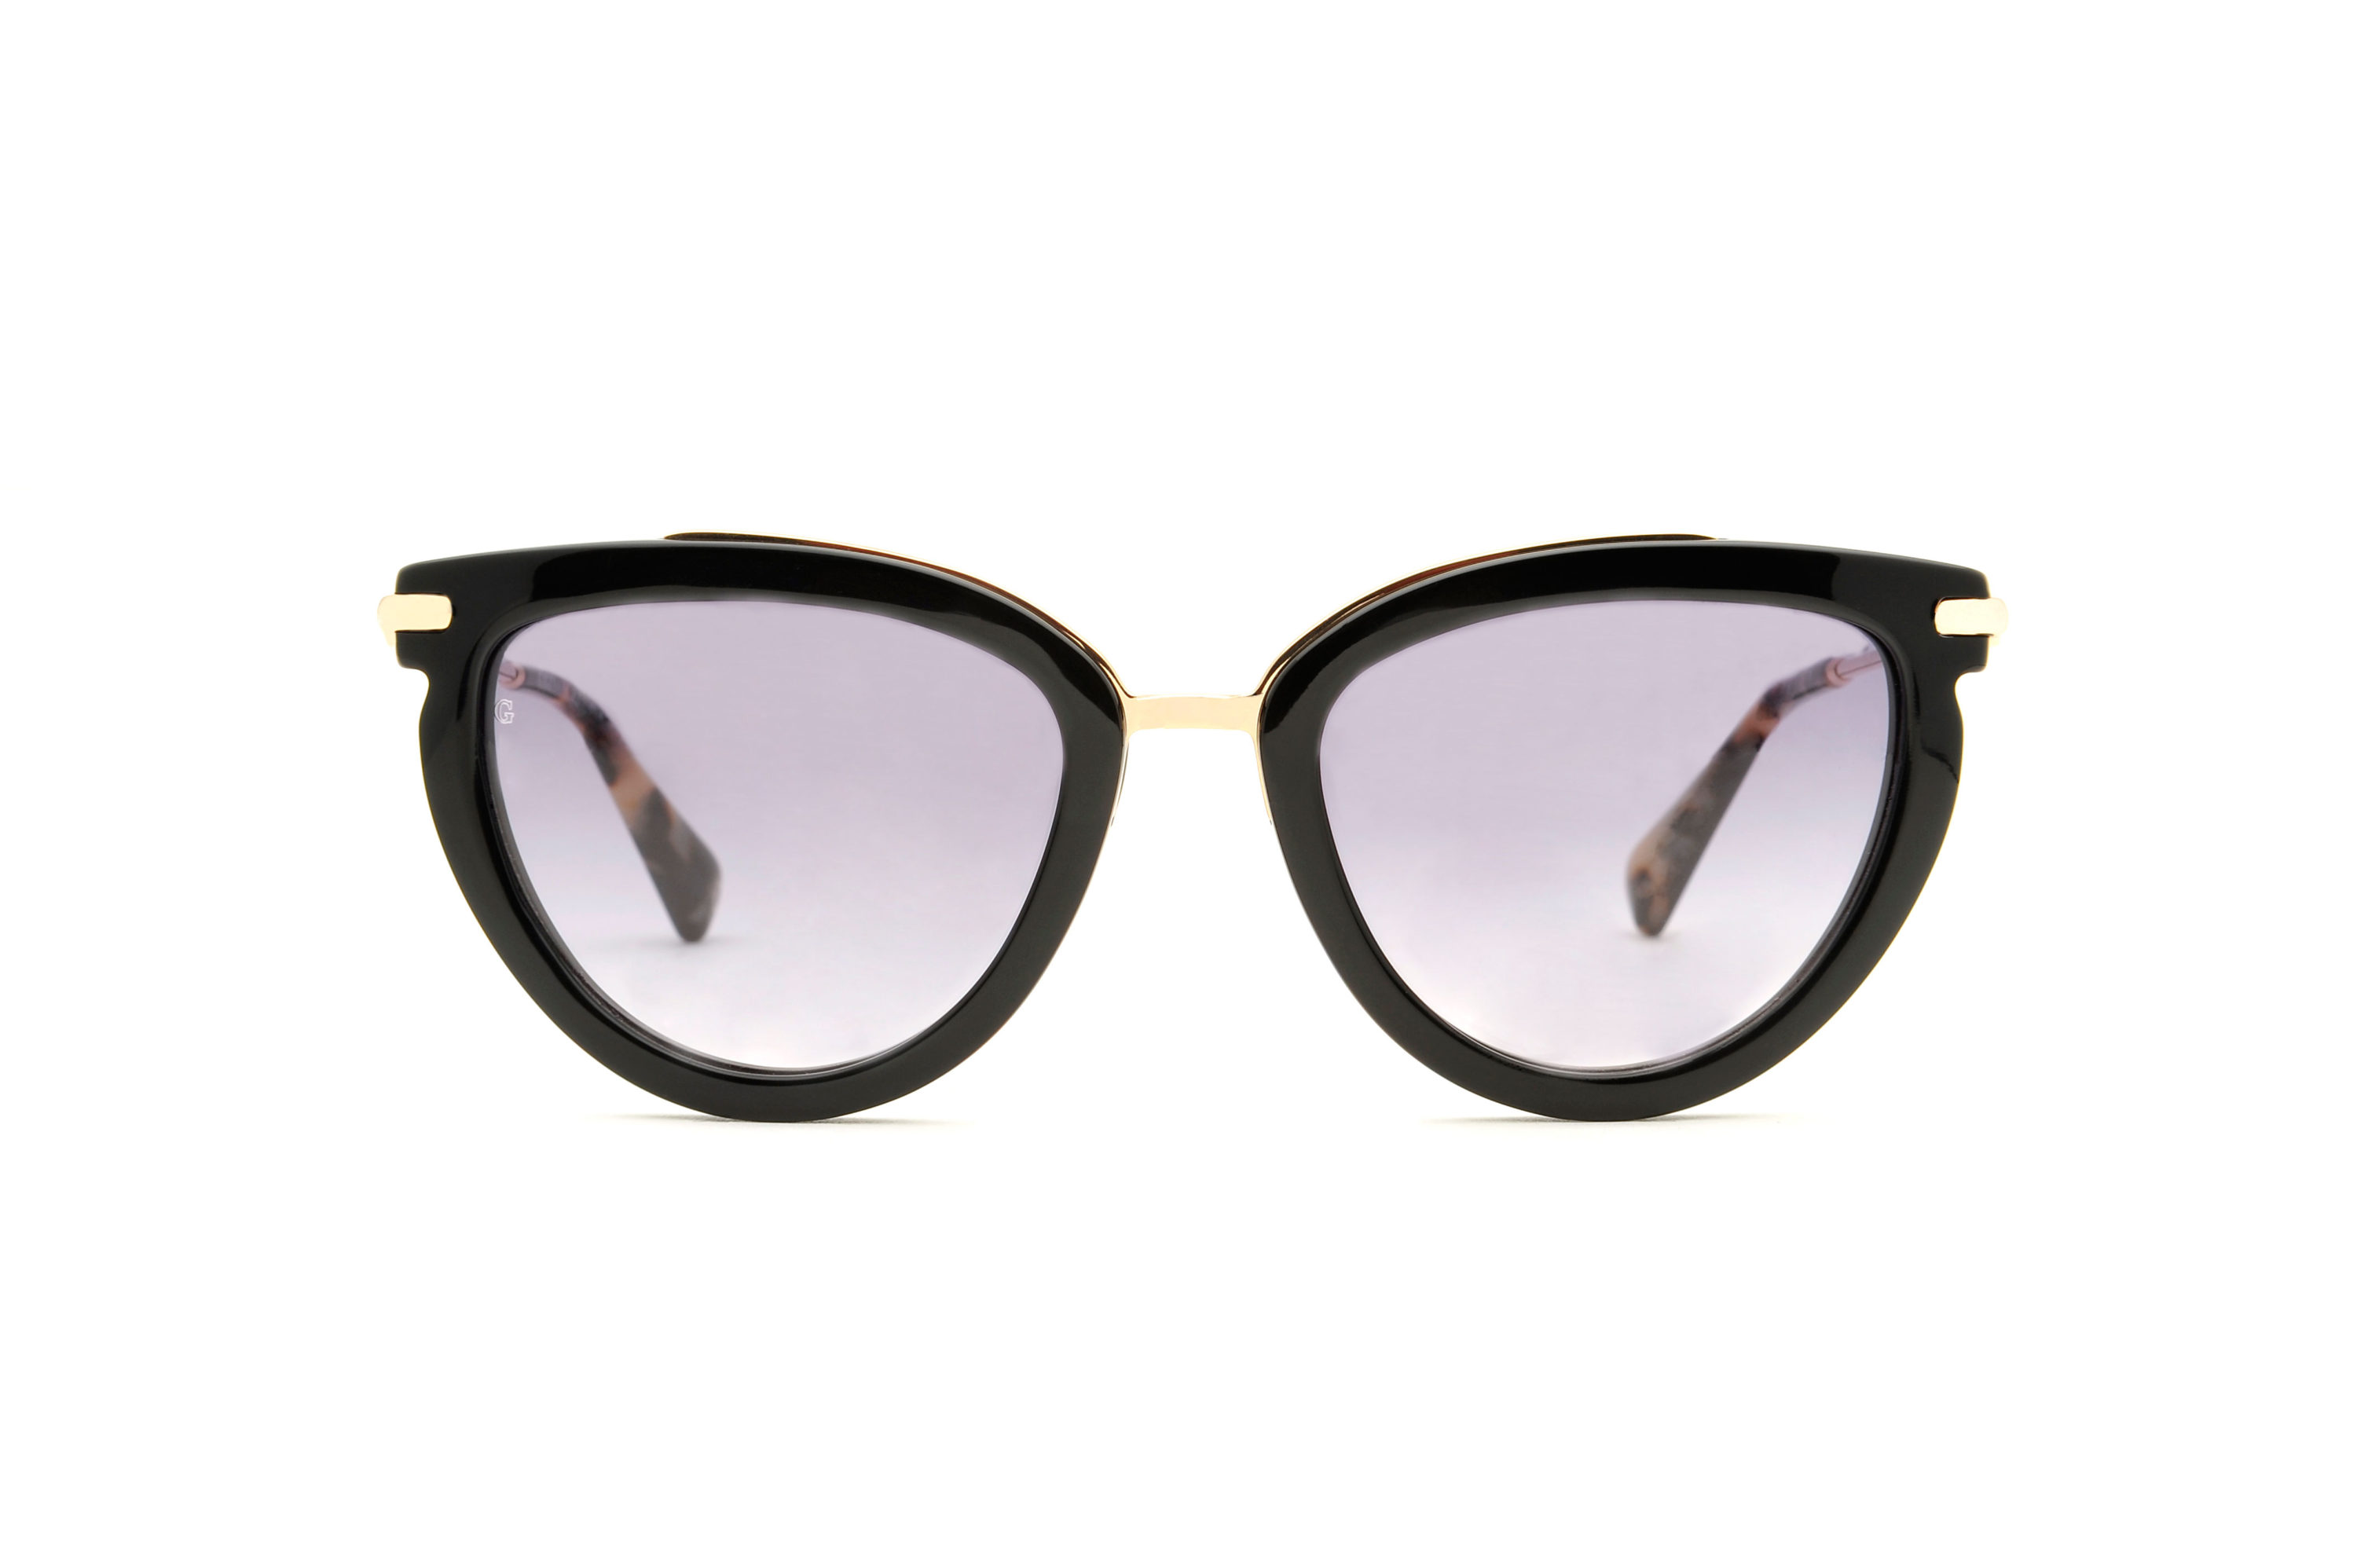 Luzia acetate/metal cat eye tortoise sunglasses by GIGI Studios